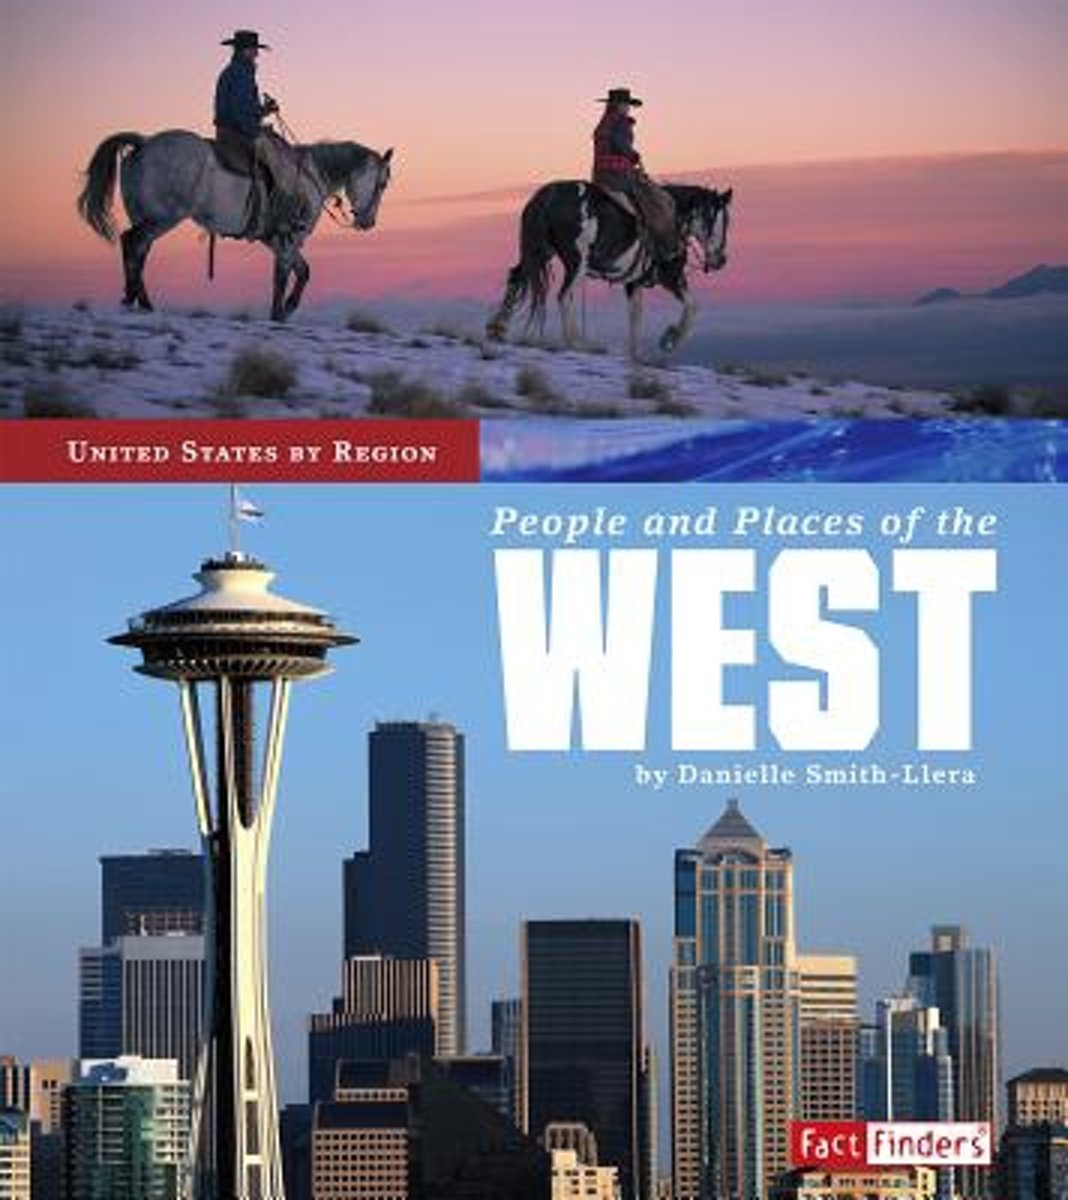 People and Places of the West